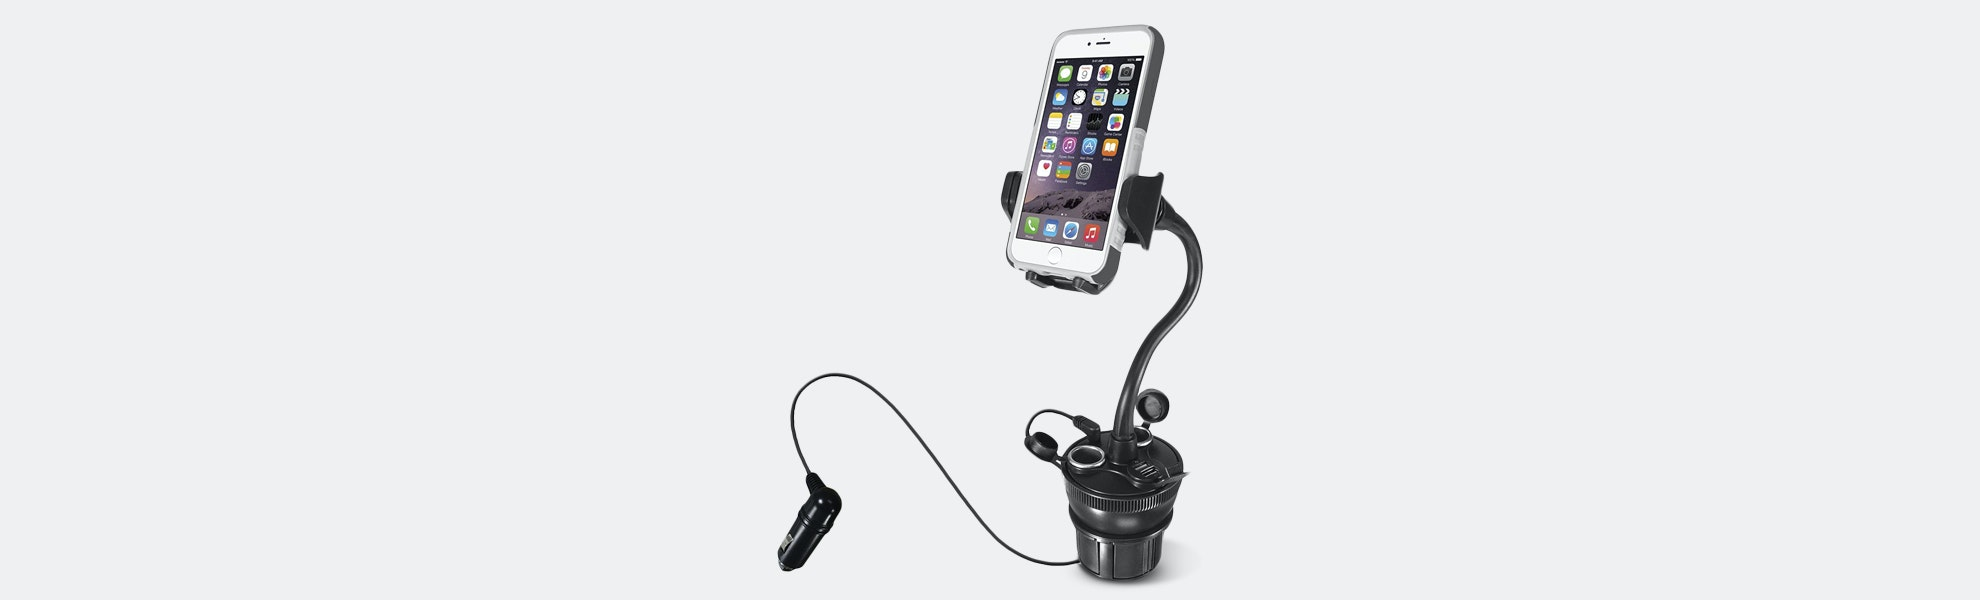 Macally Adjustable Cup-Holder Phone Mount